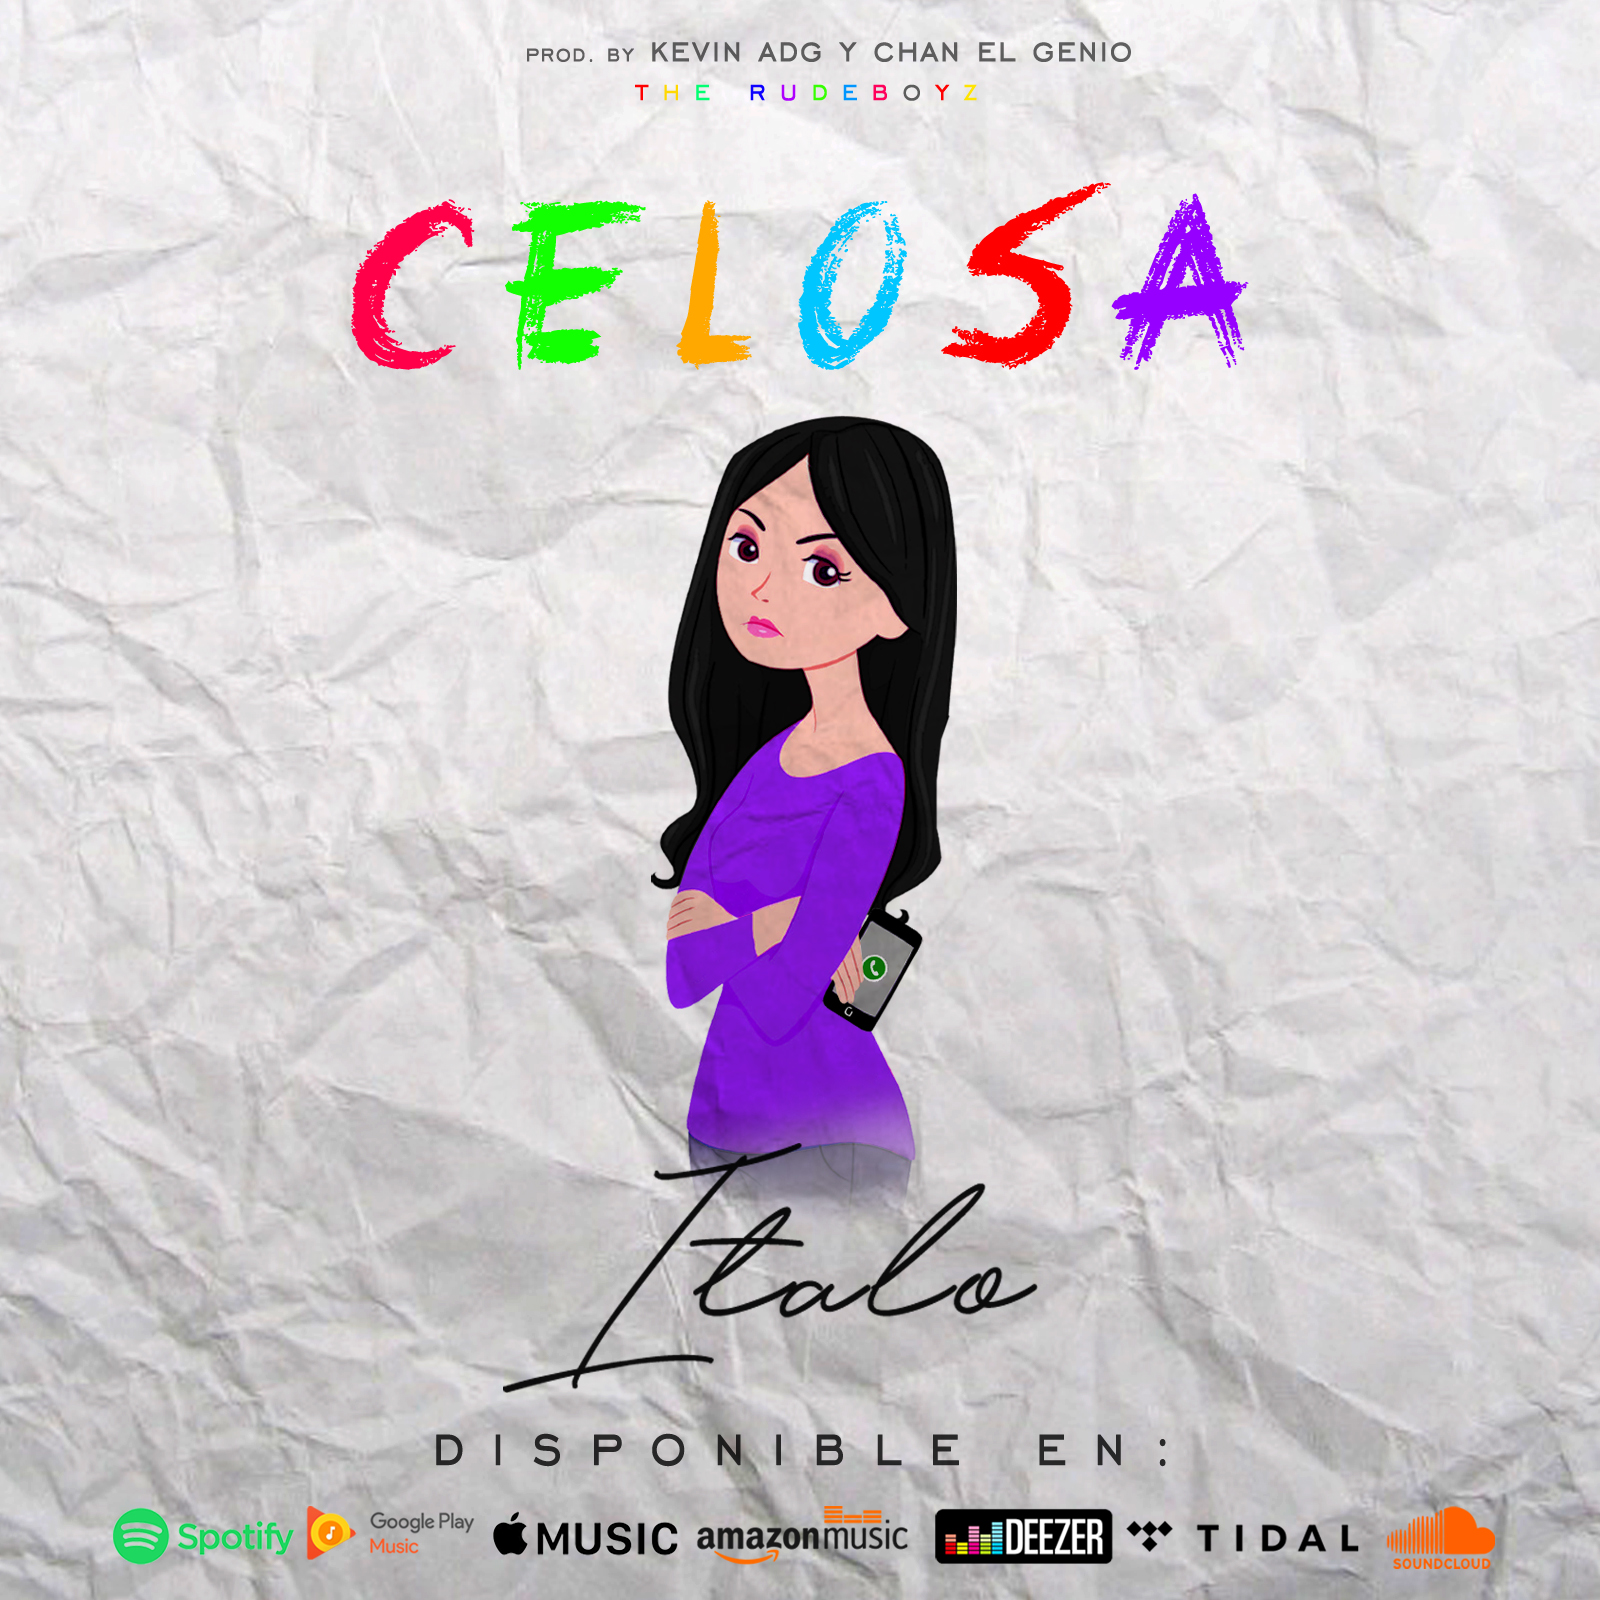 Cover Italo - Celosa Tiendas Digitales Spotify iTunes Amazon Apple Music Deezer Pandora Shazam